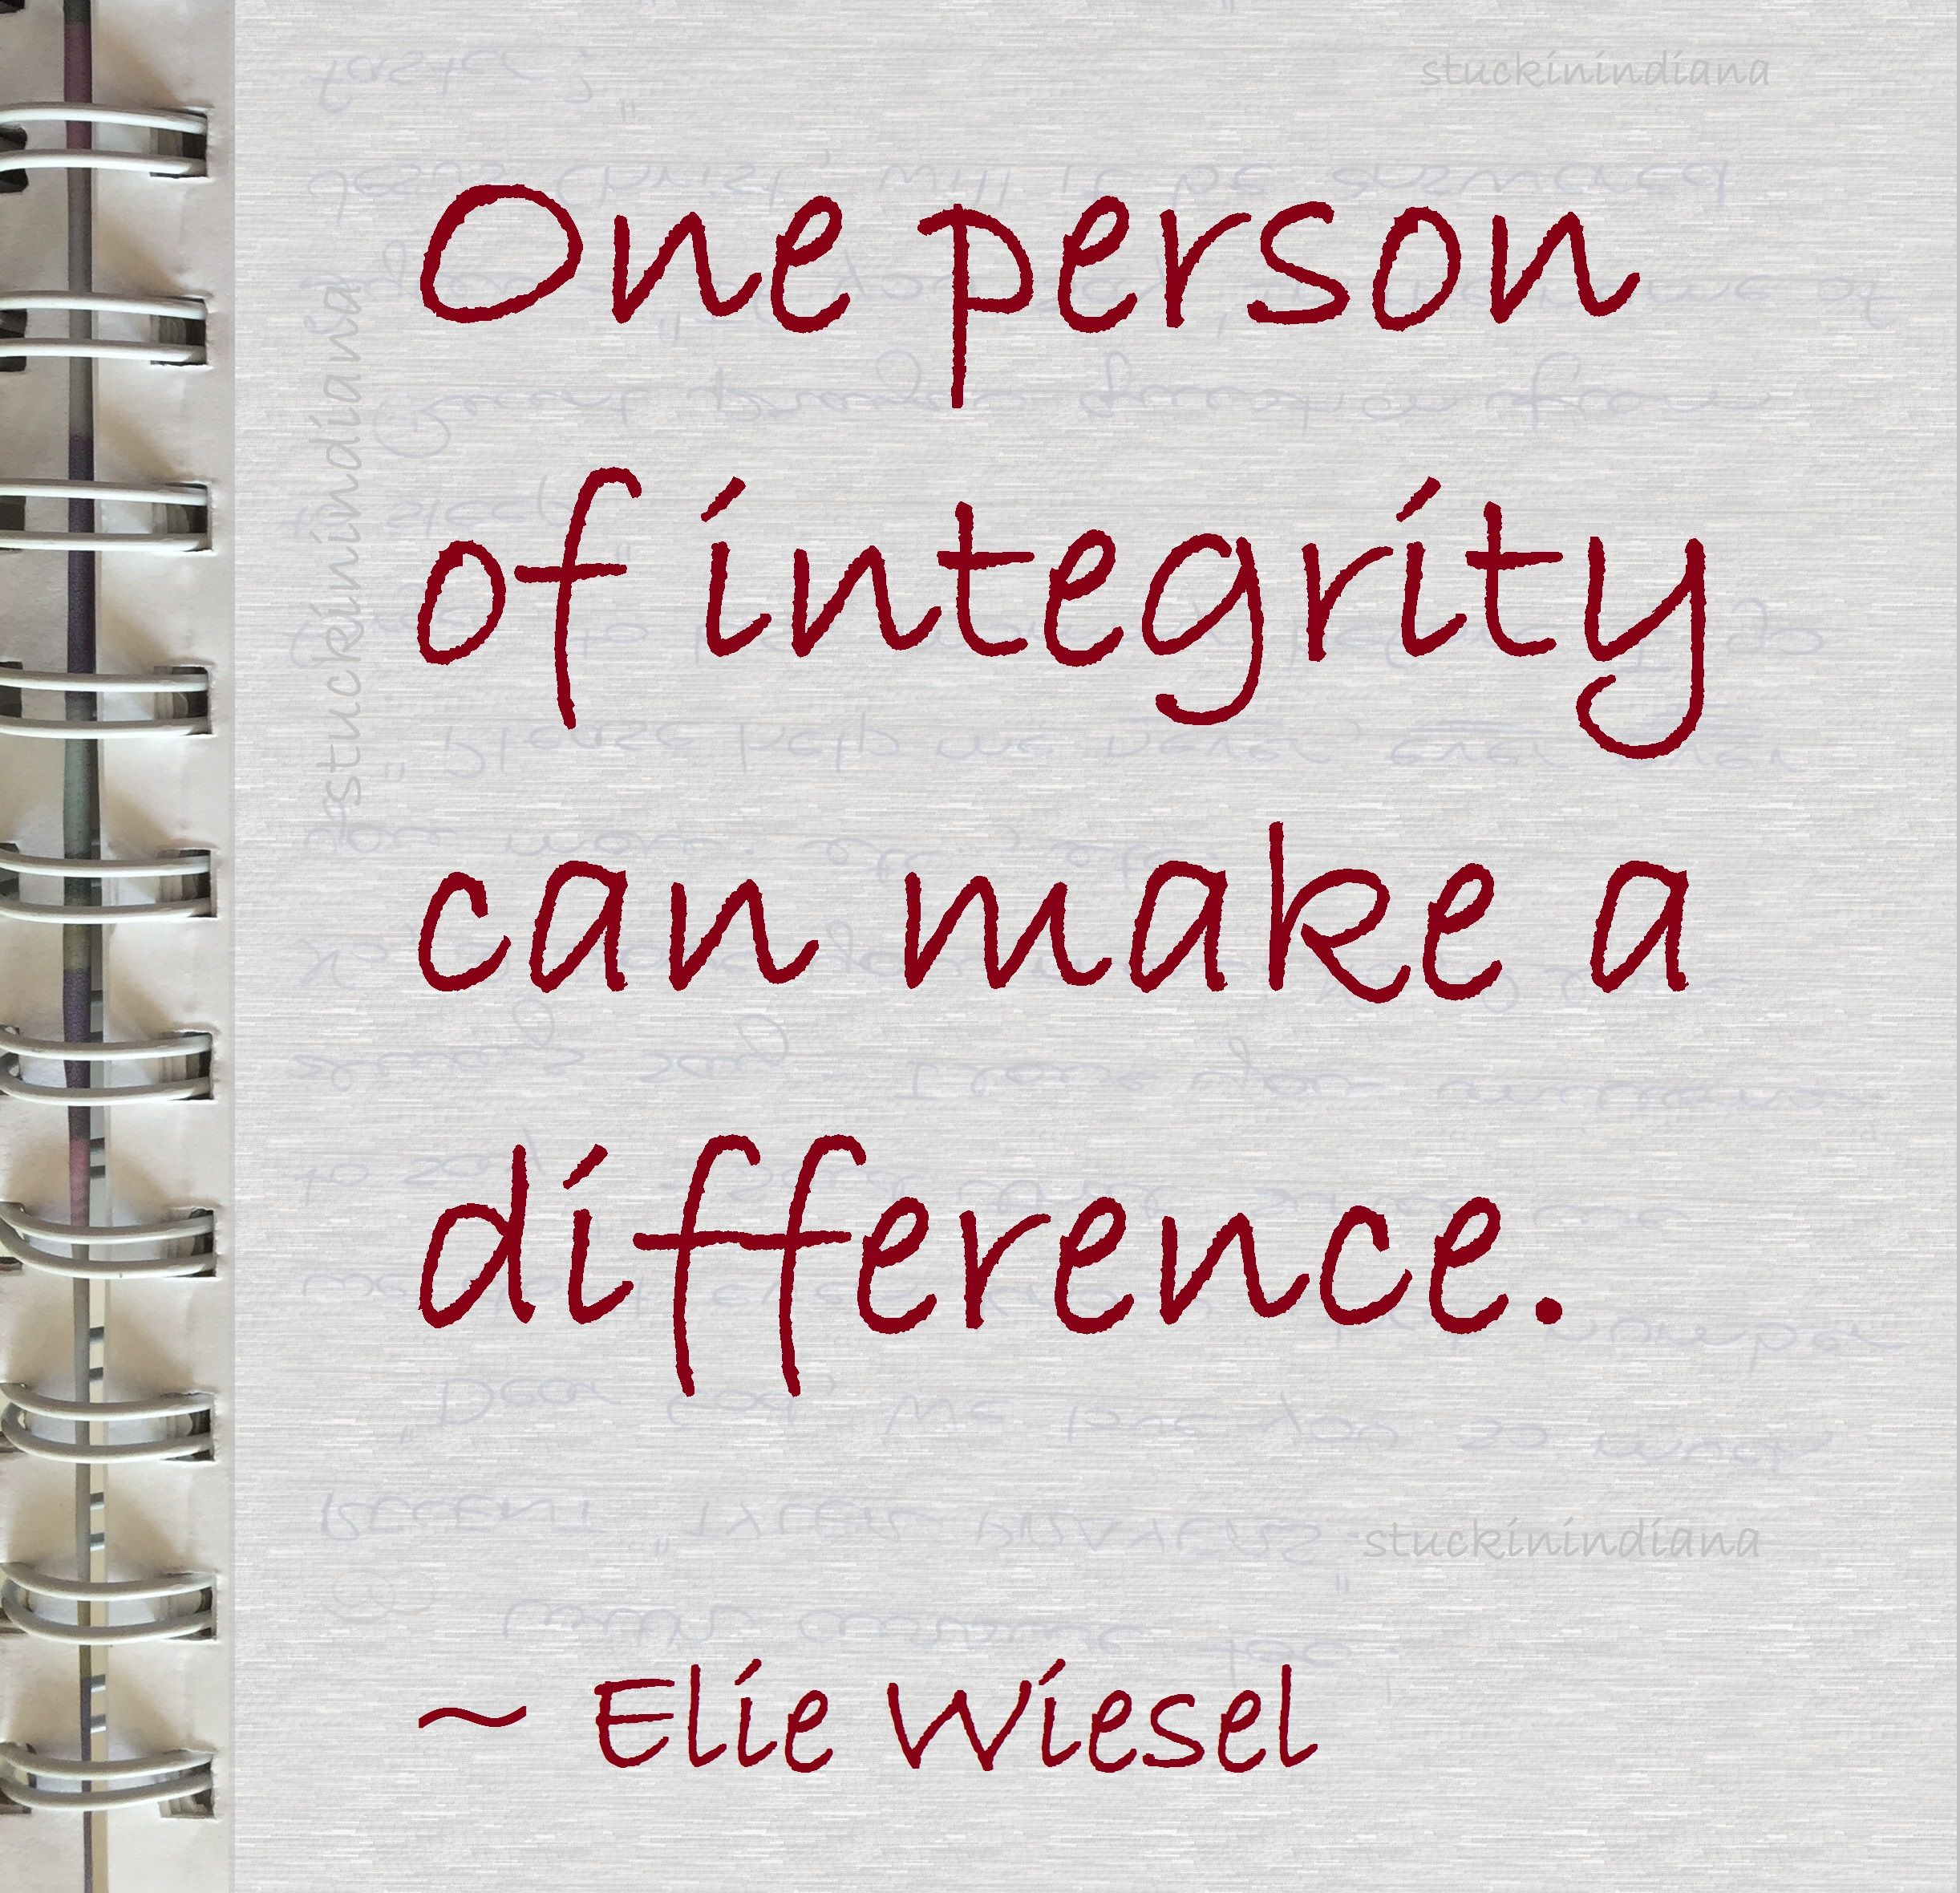 "Night By Elie Wiesel Quotes One Person Of Integrity Can Make A Difference.""  Elie Wiesel"